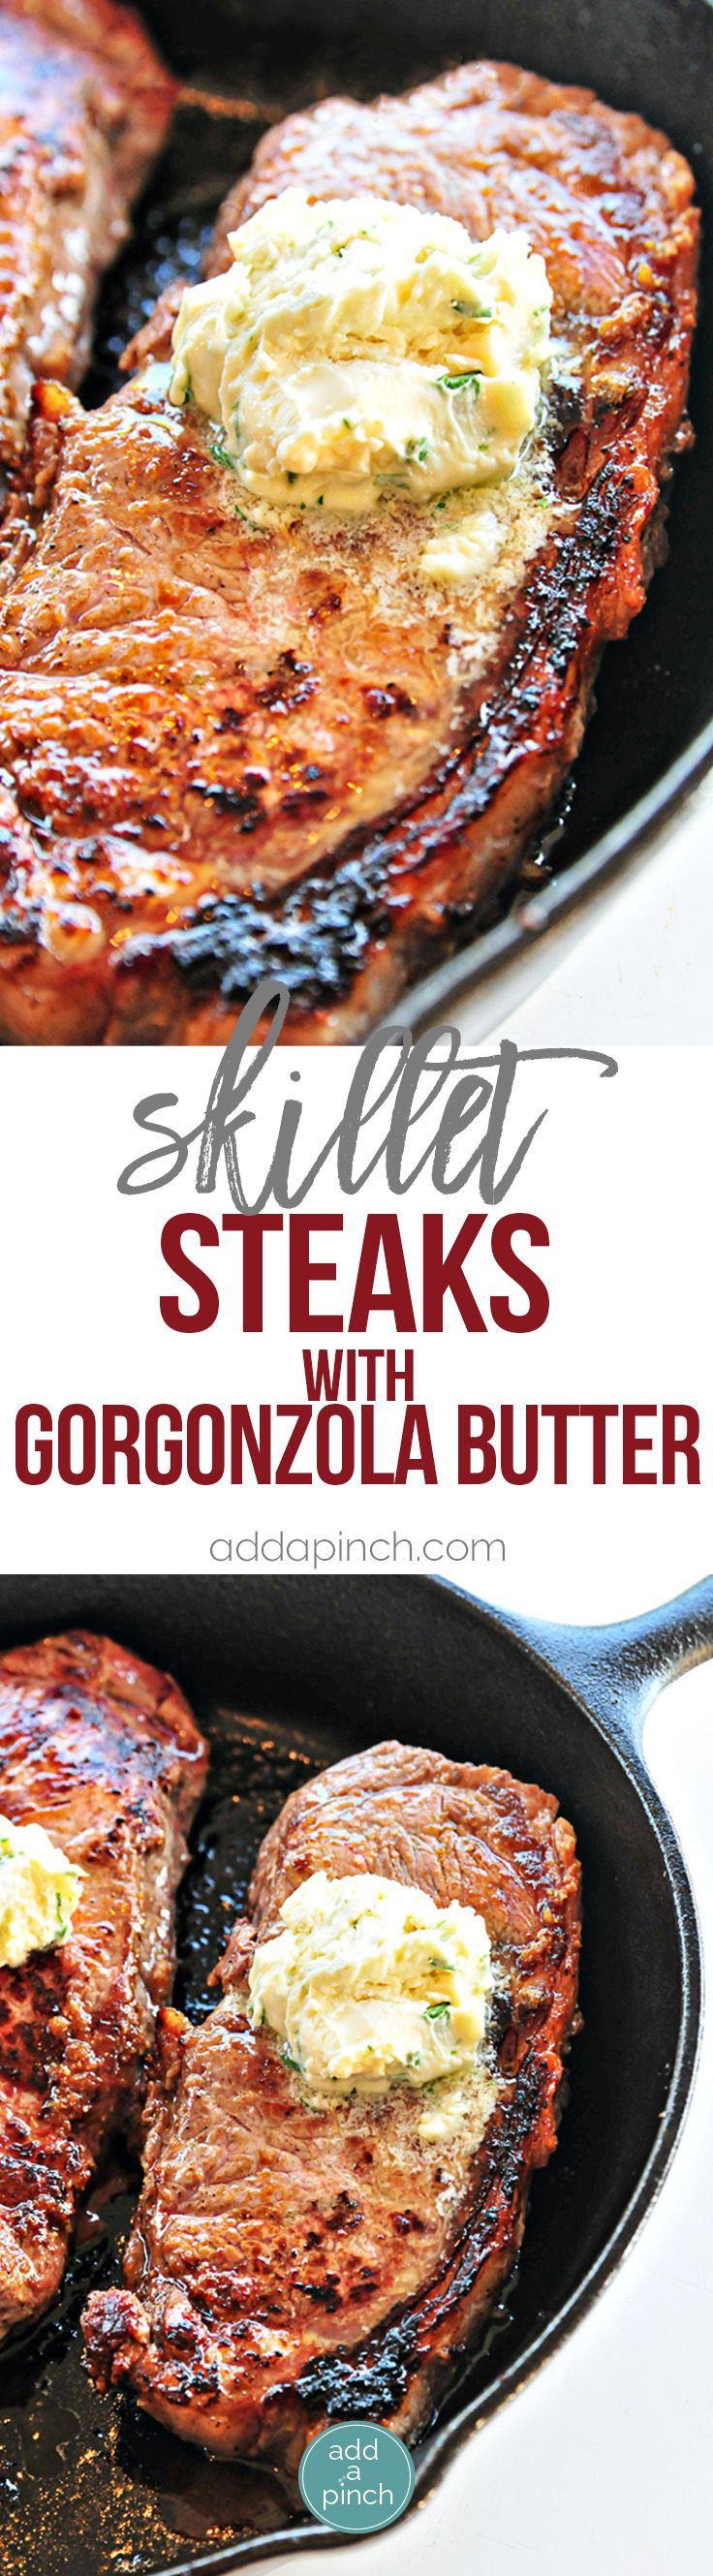 Skillet Steak with Gorgonzola Herbed Butter Recipe - Make a restaurant quality steak at home using these helpful tips and recipe! // addapinch.com